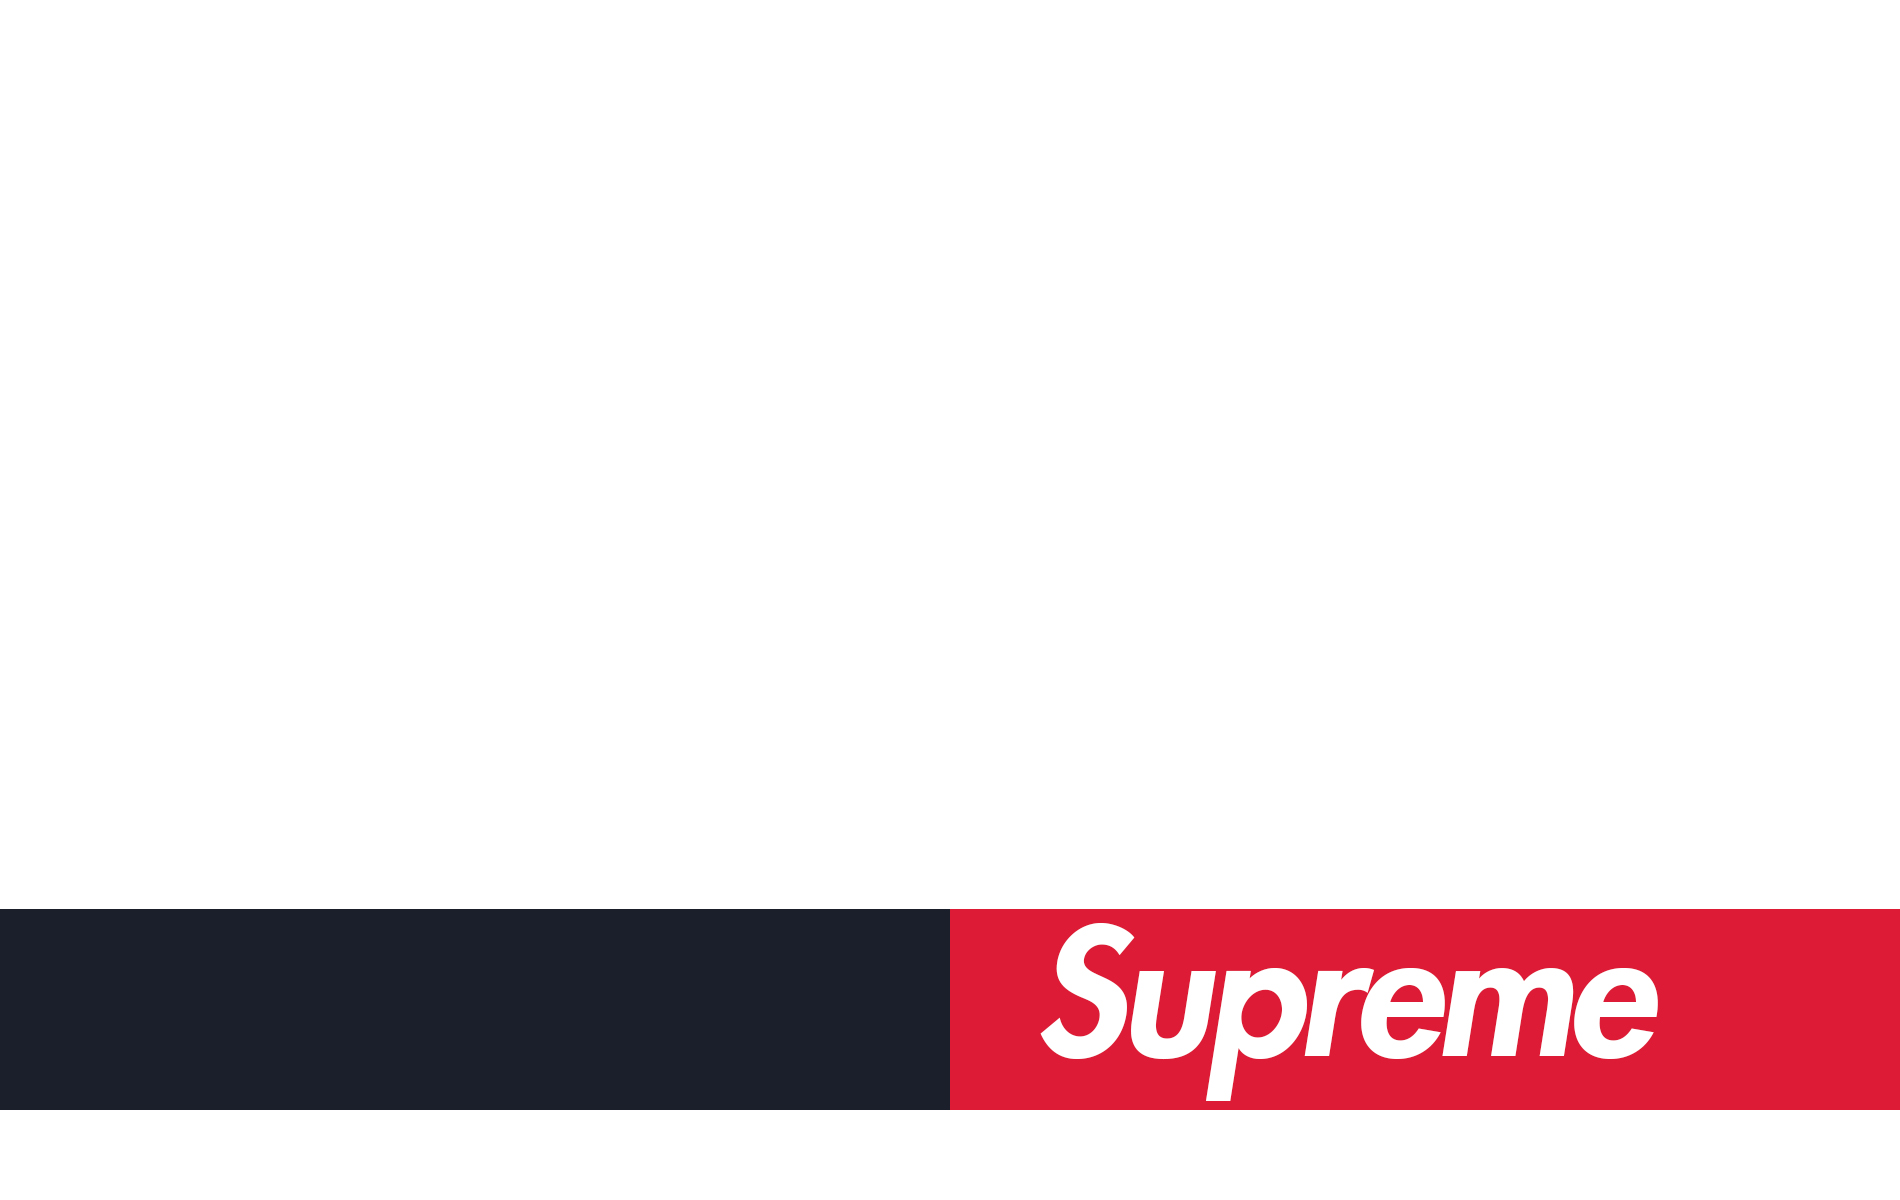 Supreme Wallpapers desktop and mobile HD 40